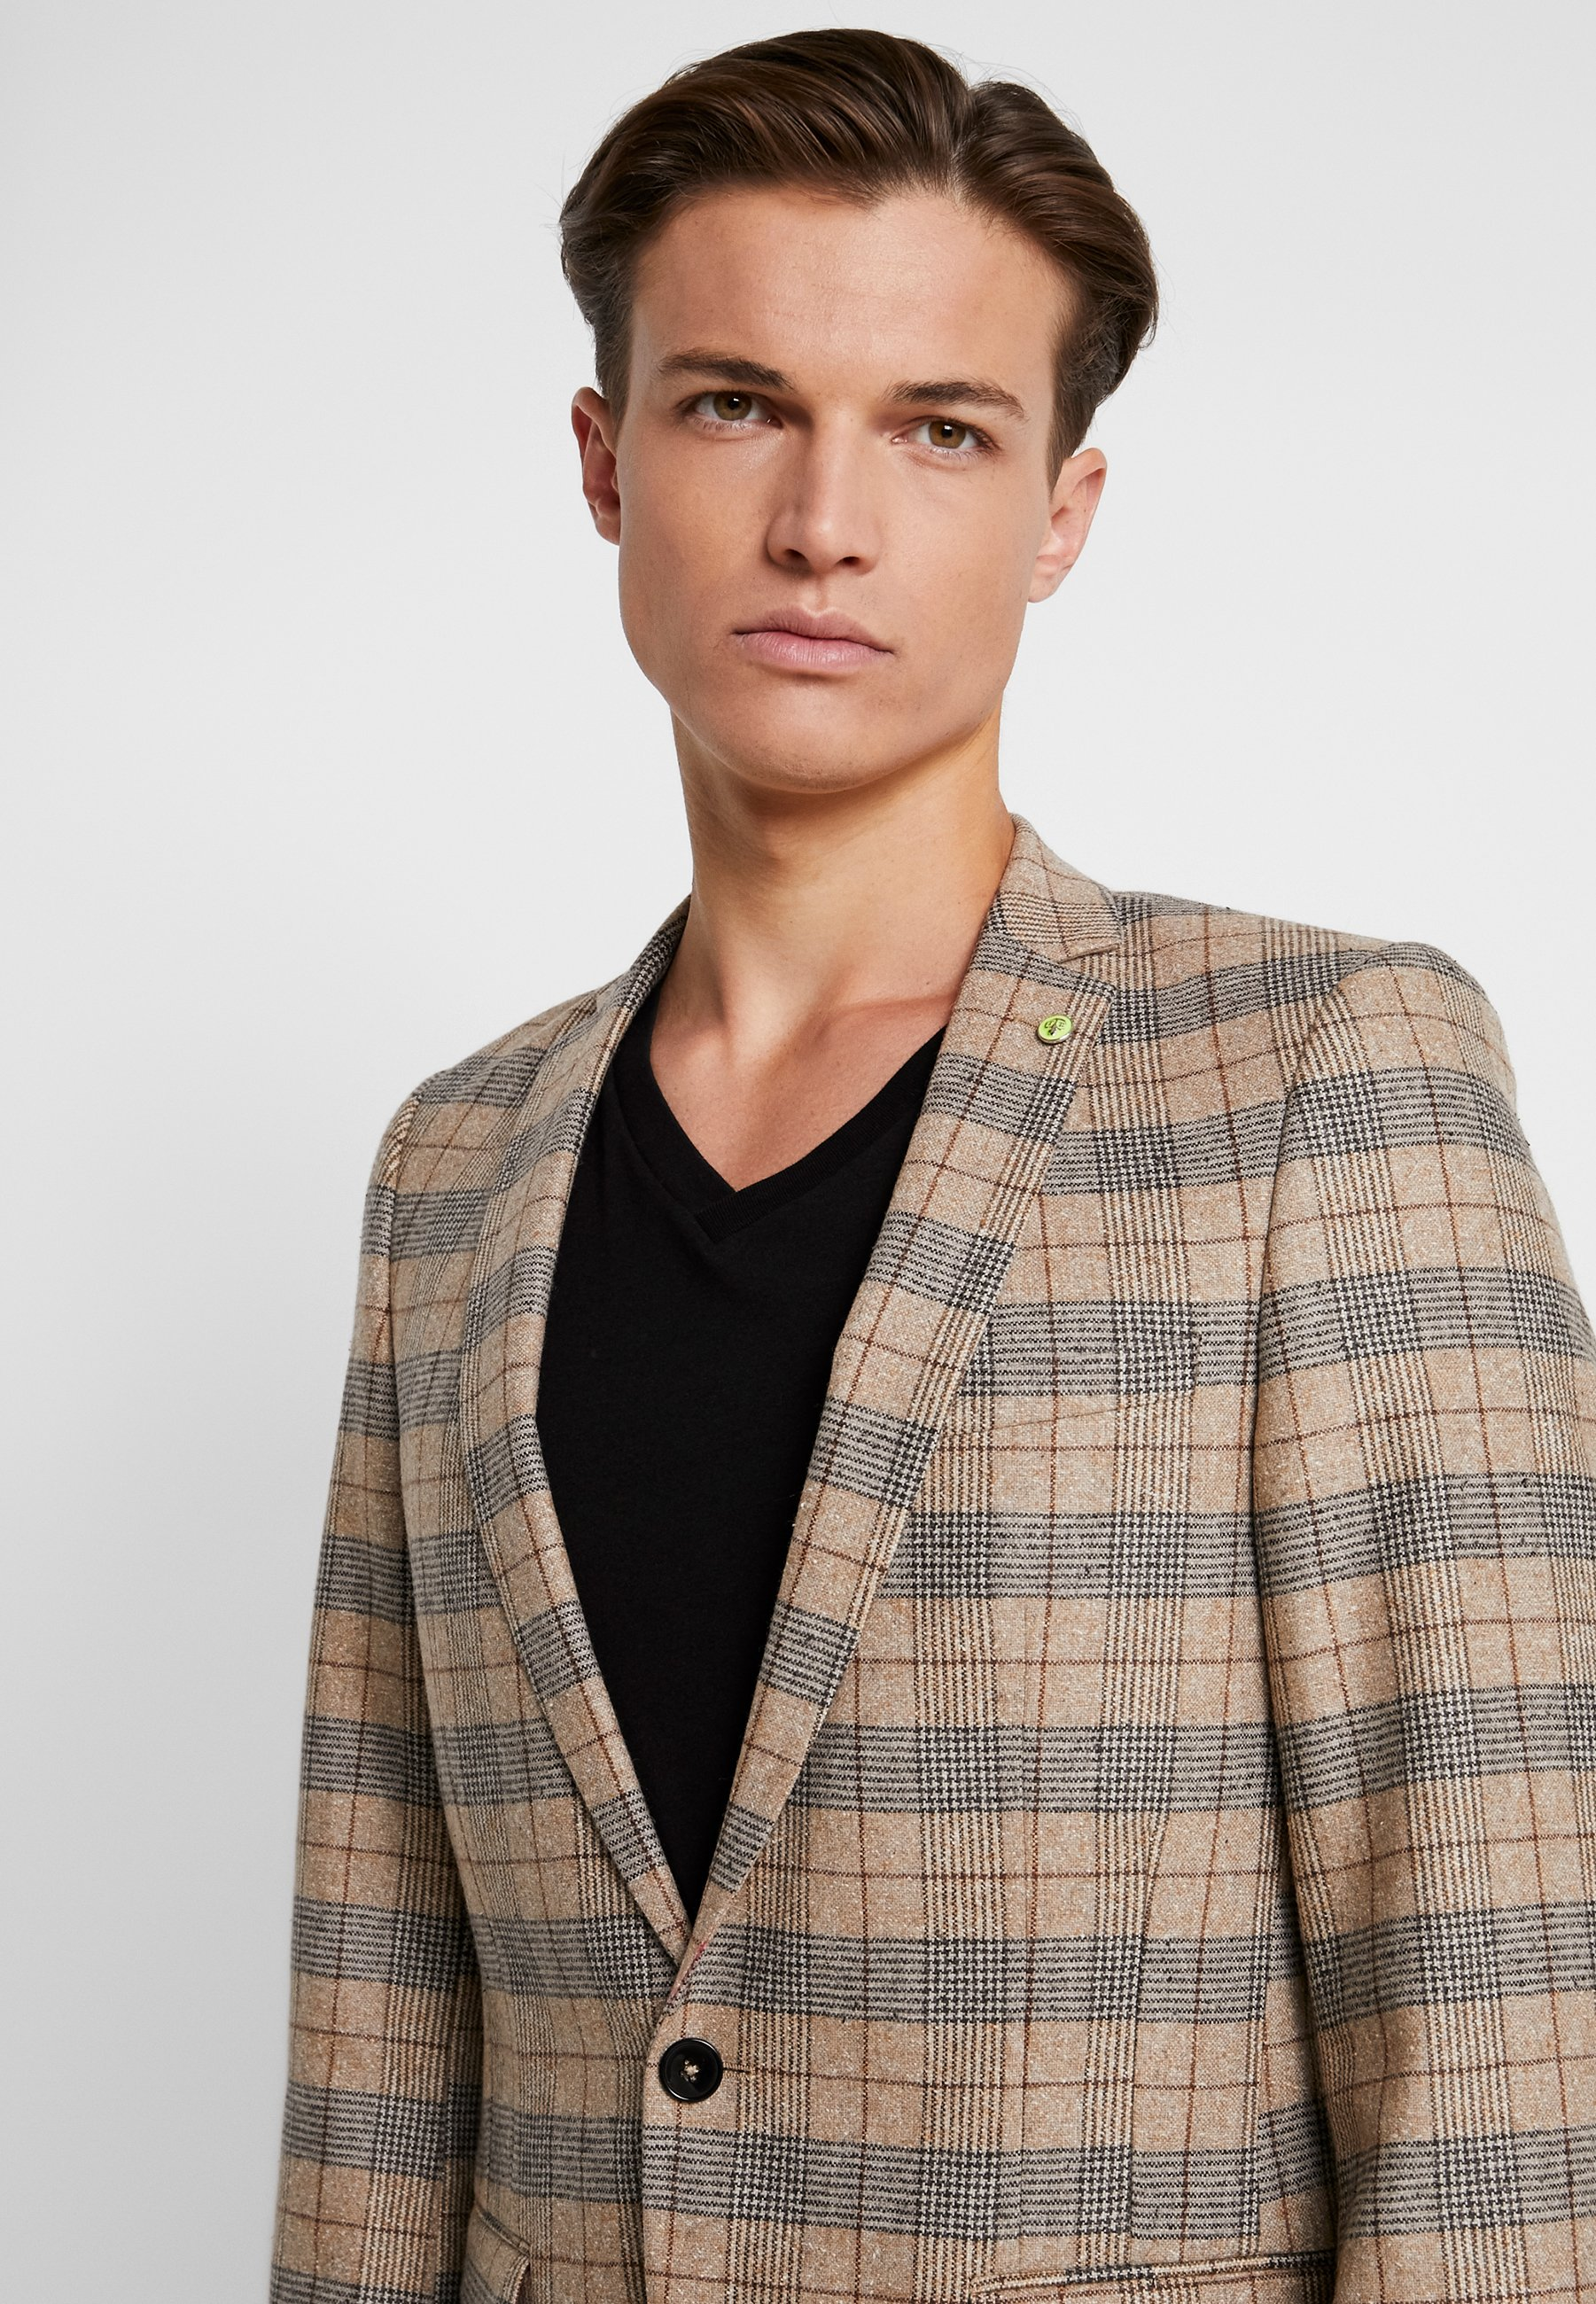 SuitCostume Twisted Twisted Ace Ace Ace Tan Tailor Tailor Tan Twisted SuitCostume SuitCostume Tailor 8w0Nvmn